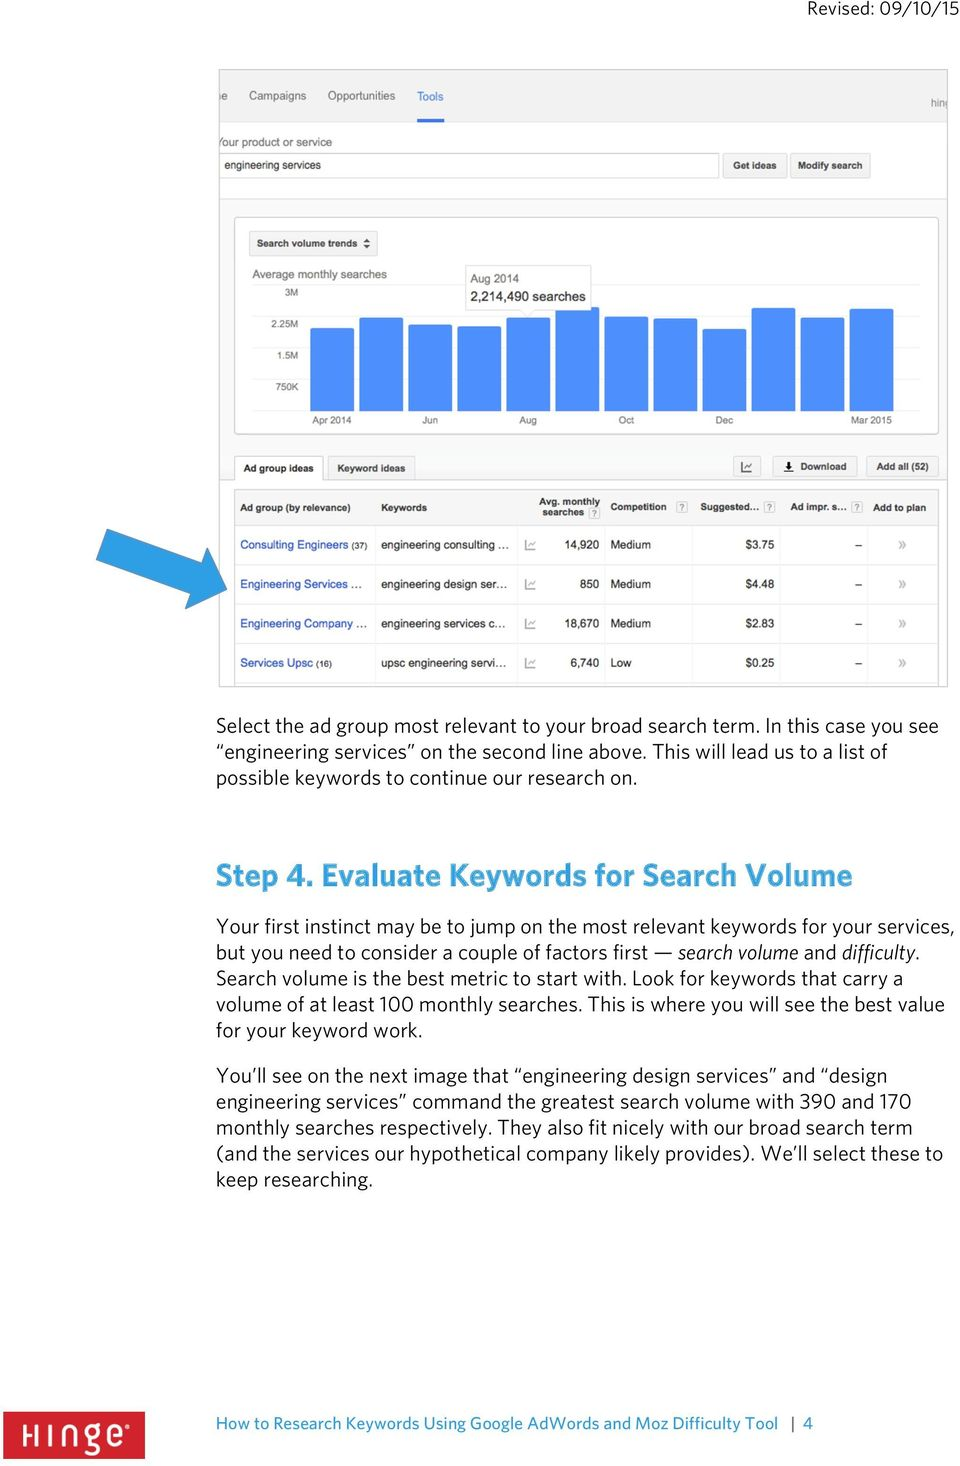 Evaluate Keywords for Search Volume Your first instinct may be to jump on the most relevant keywords for your services, but you need to consider a couple of factors first search volume and difficulty.